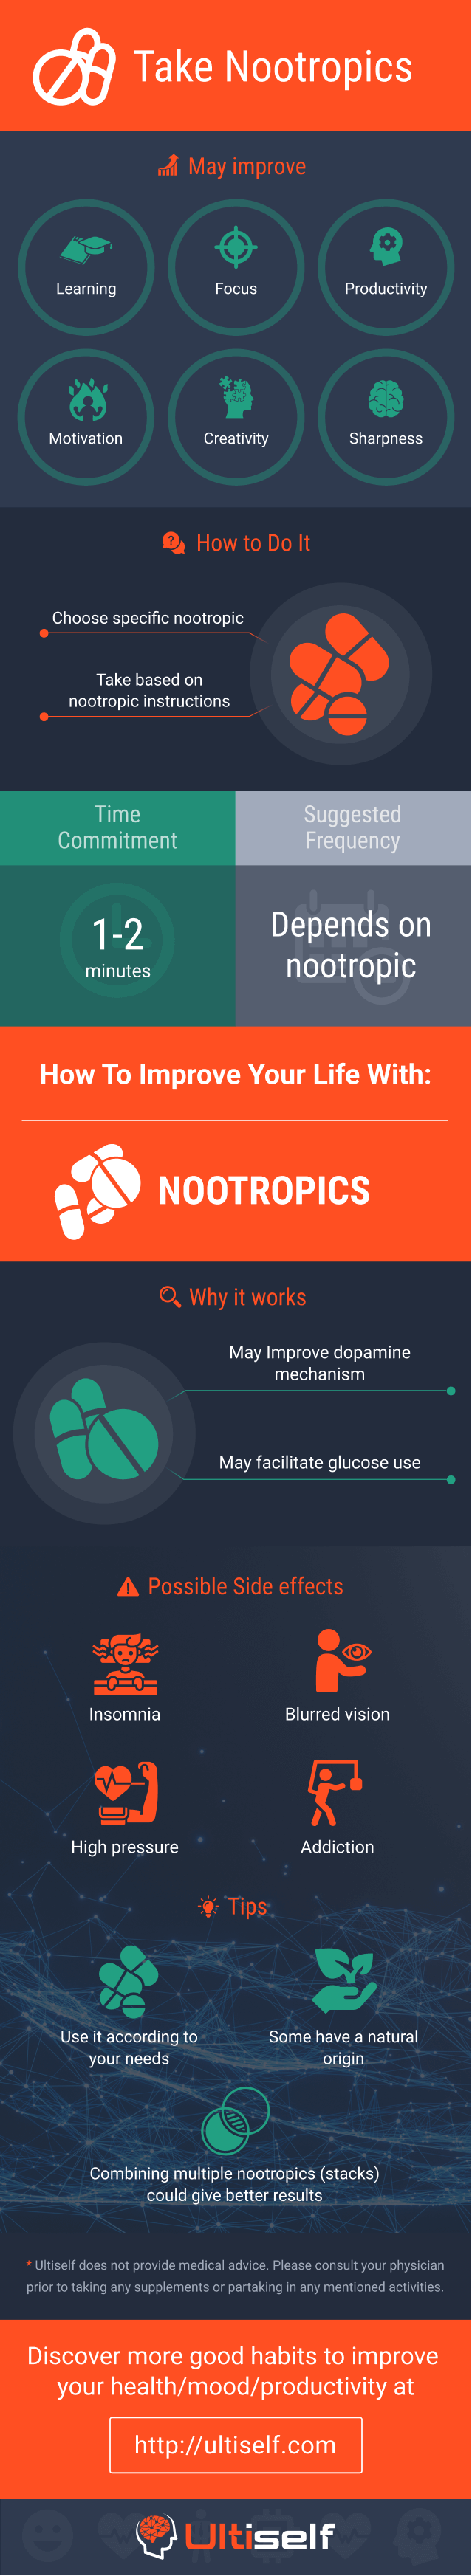 Take Nootropics infographic